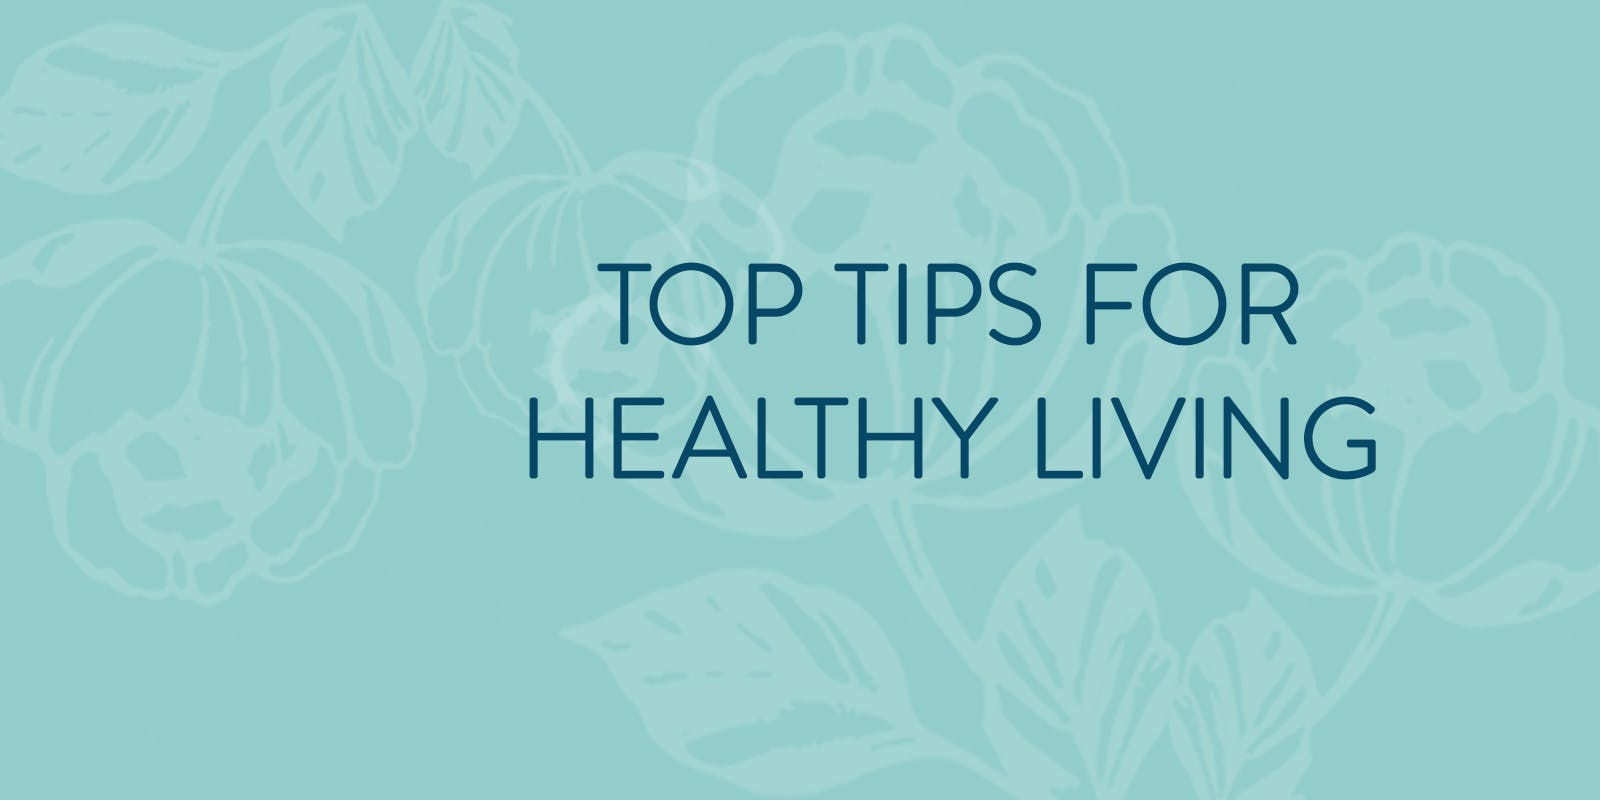 Top tips for healthy living